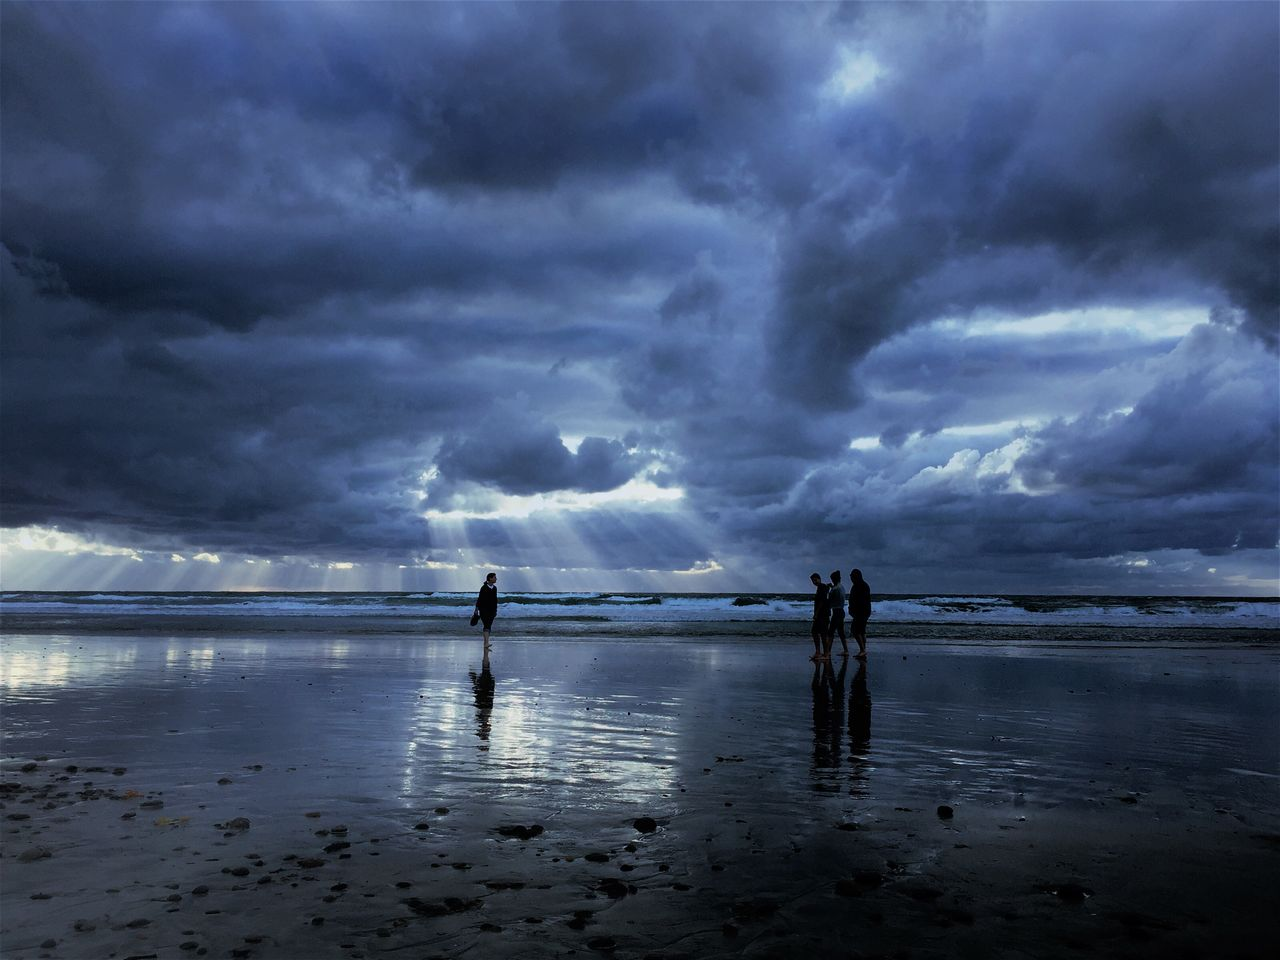 People At Beach Against Storm Clouds